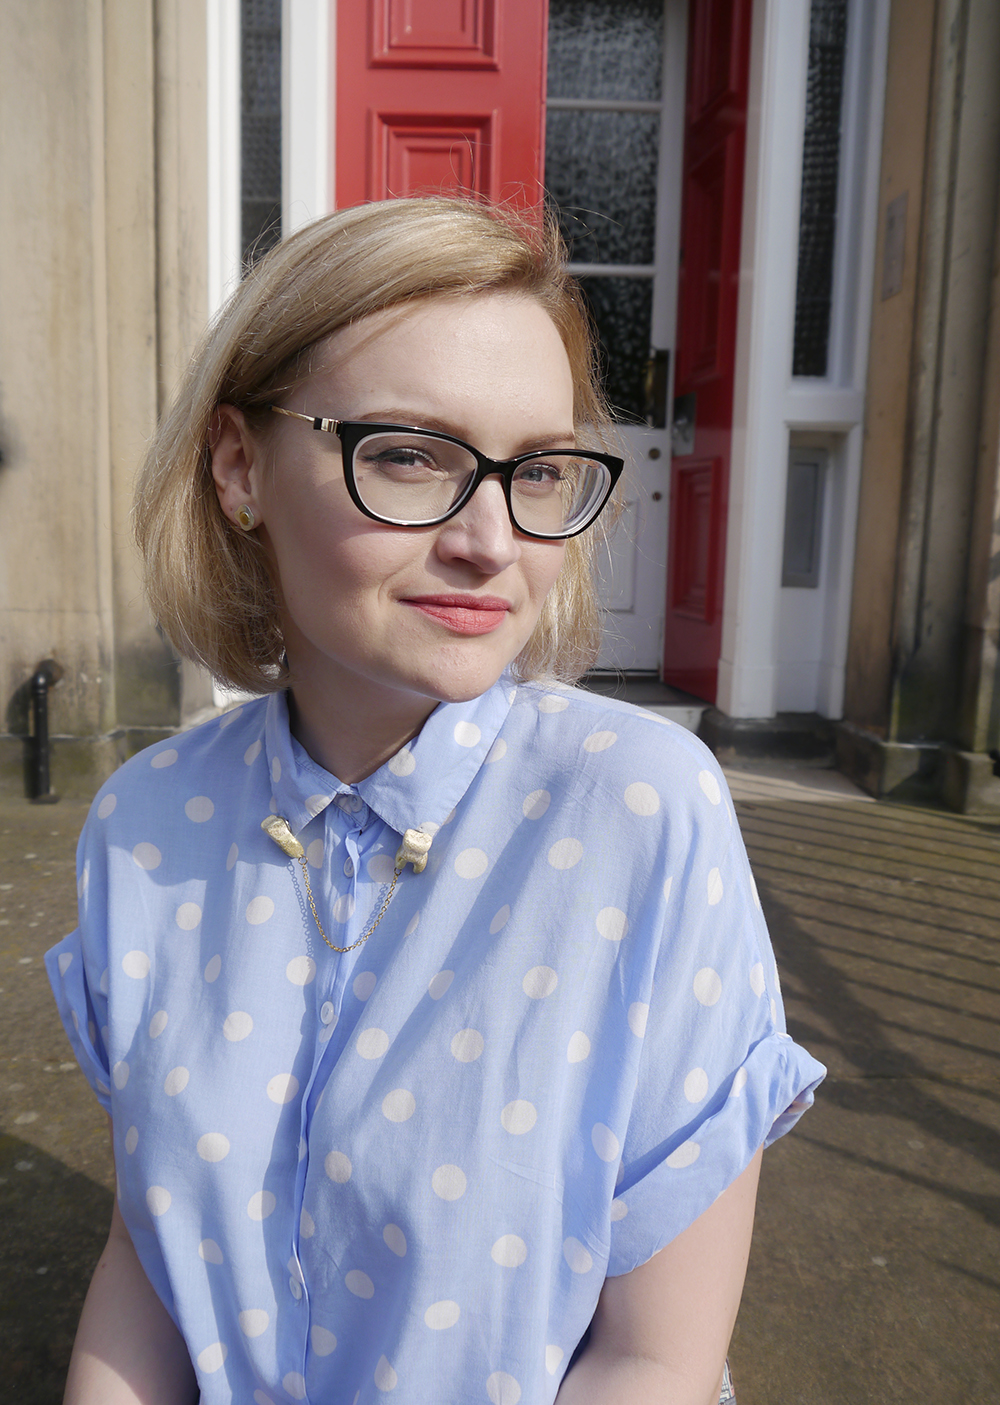 Scottish blogger, Edinburgh blogger, vision express heritage collection glasses, glitter teeth collar clips, hey kitsch kitty collar clips, fried egg earrings, Scottish street style, quirky street style, dressing to a theme, food inspired outfit, pale girl style,